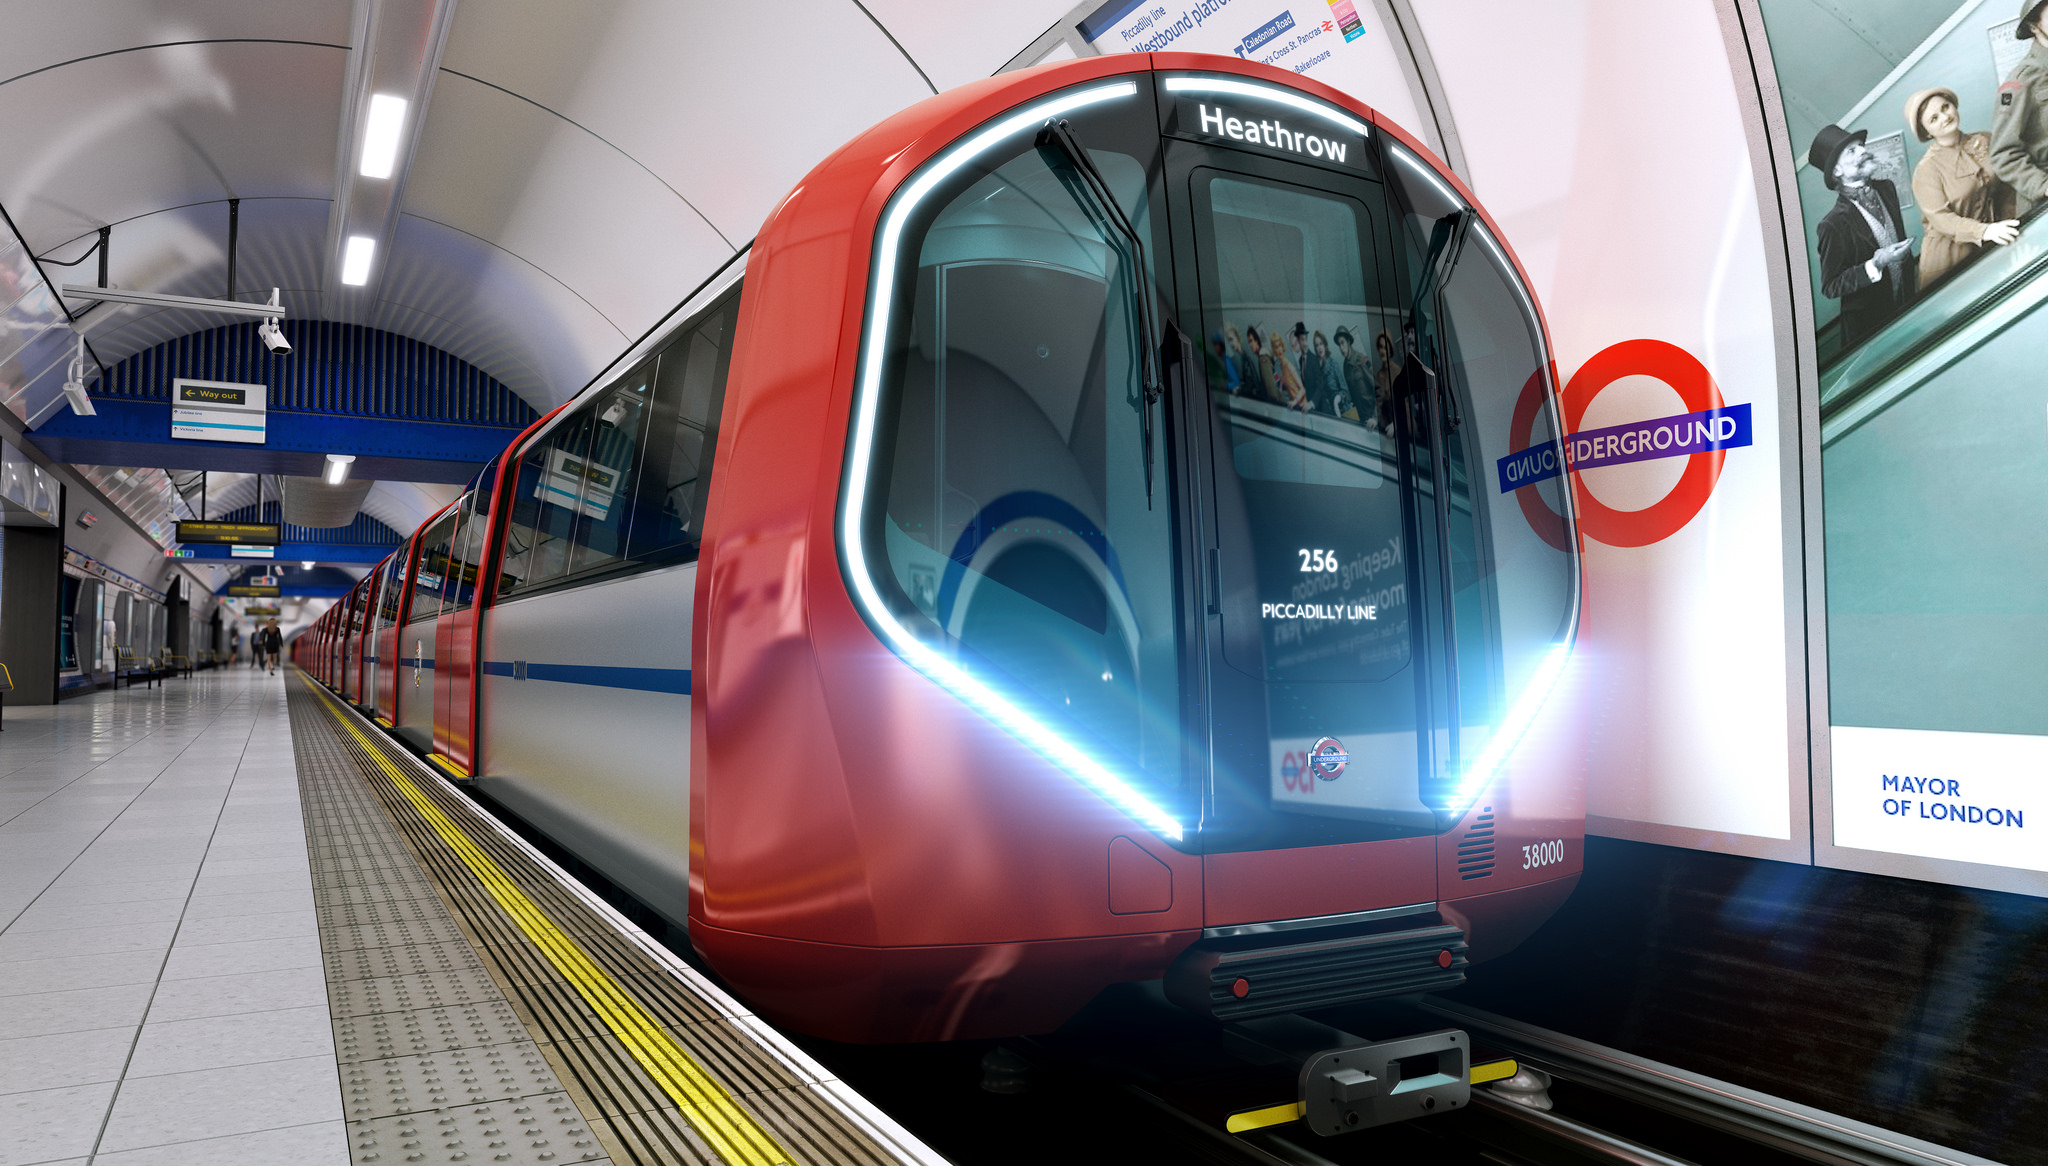 Night tube given green signal as embarrassing London Underground stand-off ends